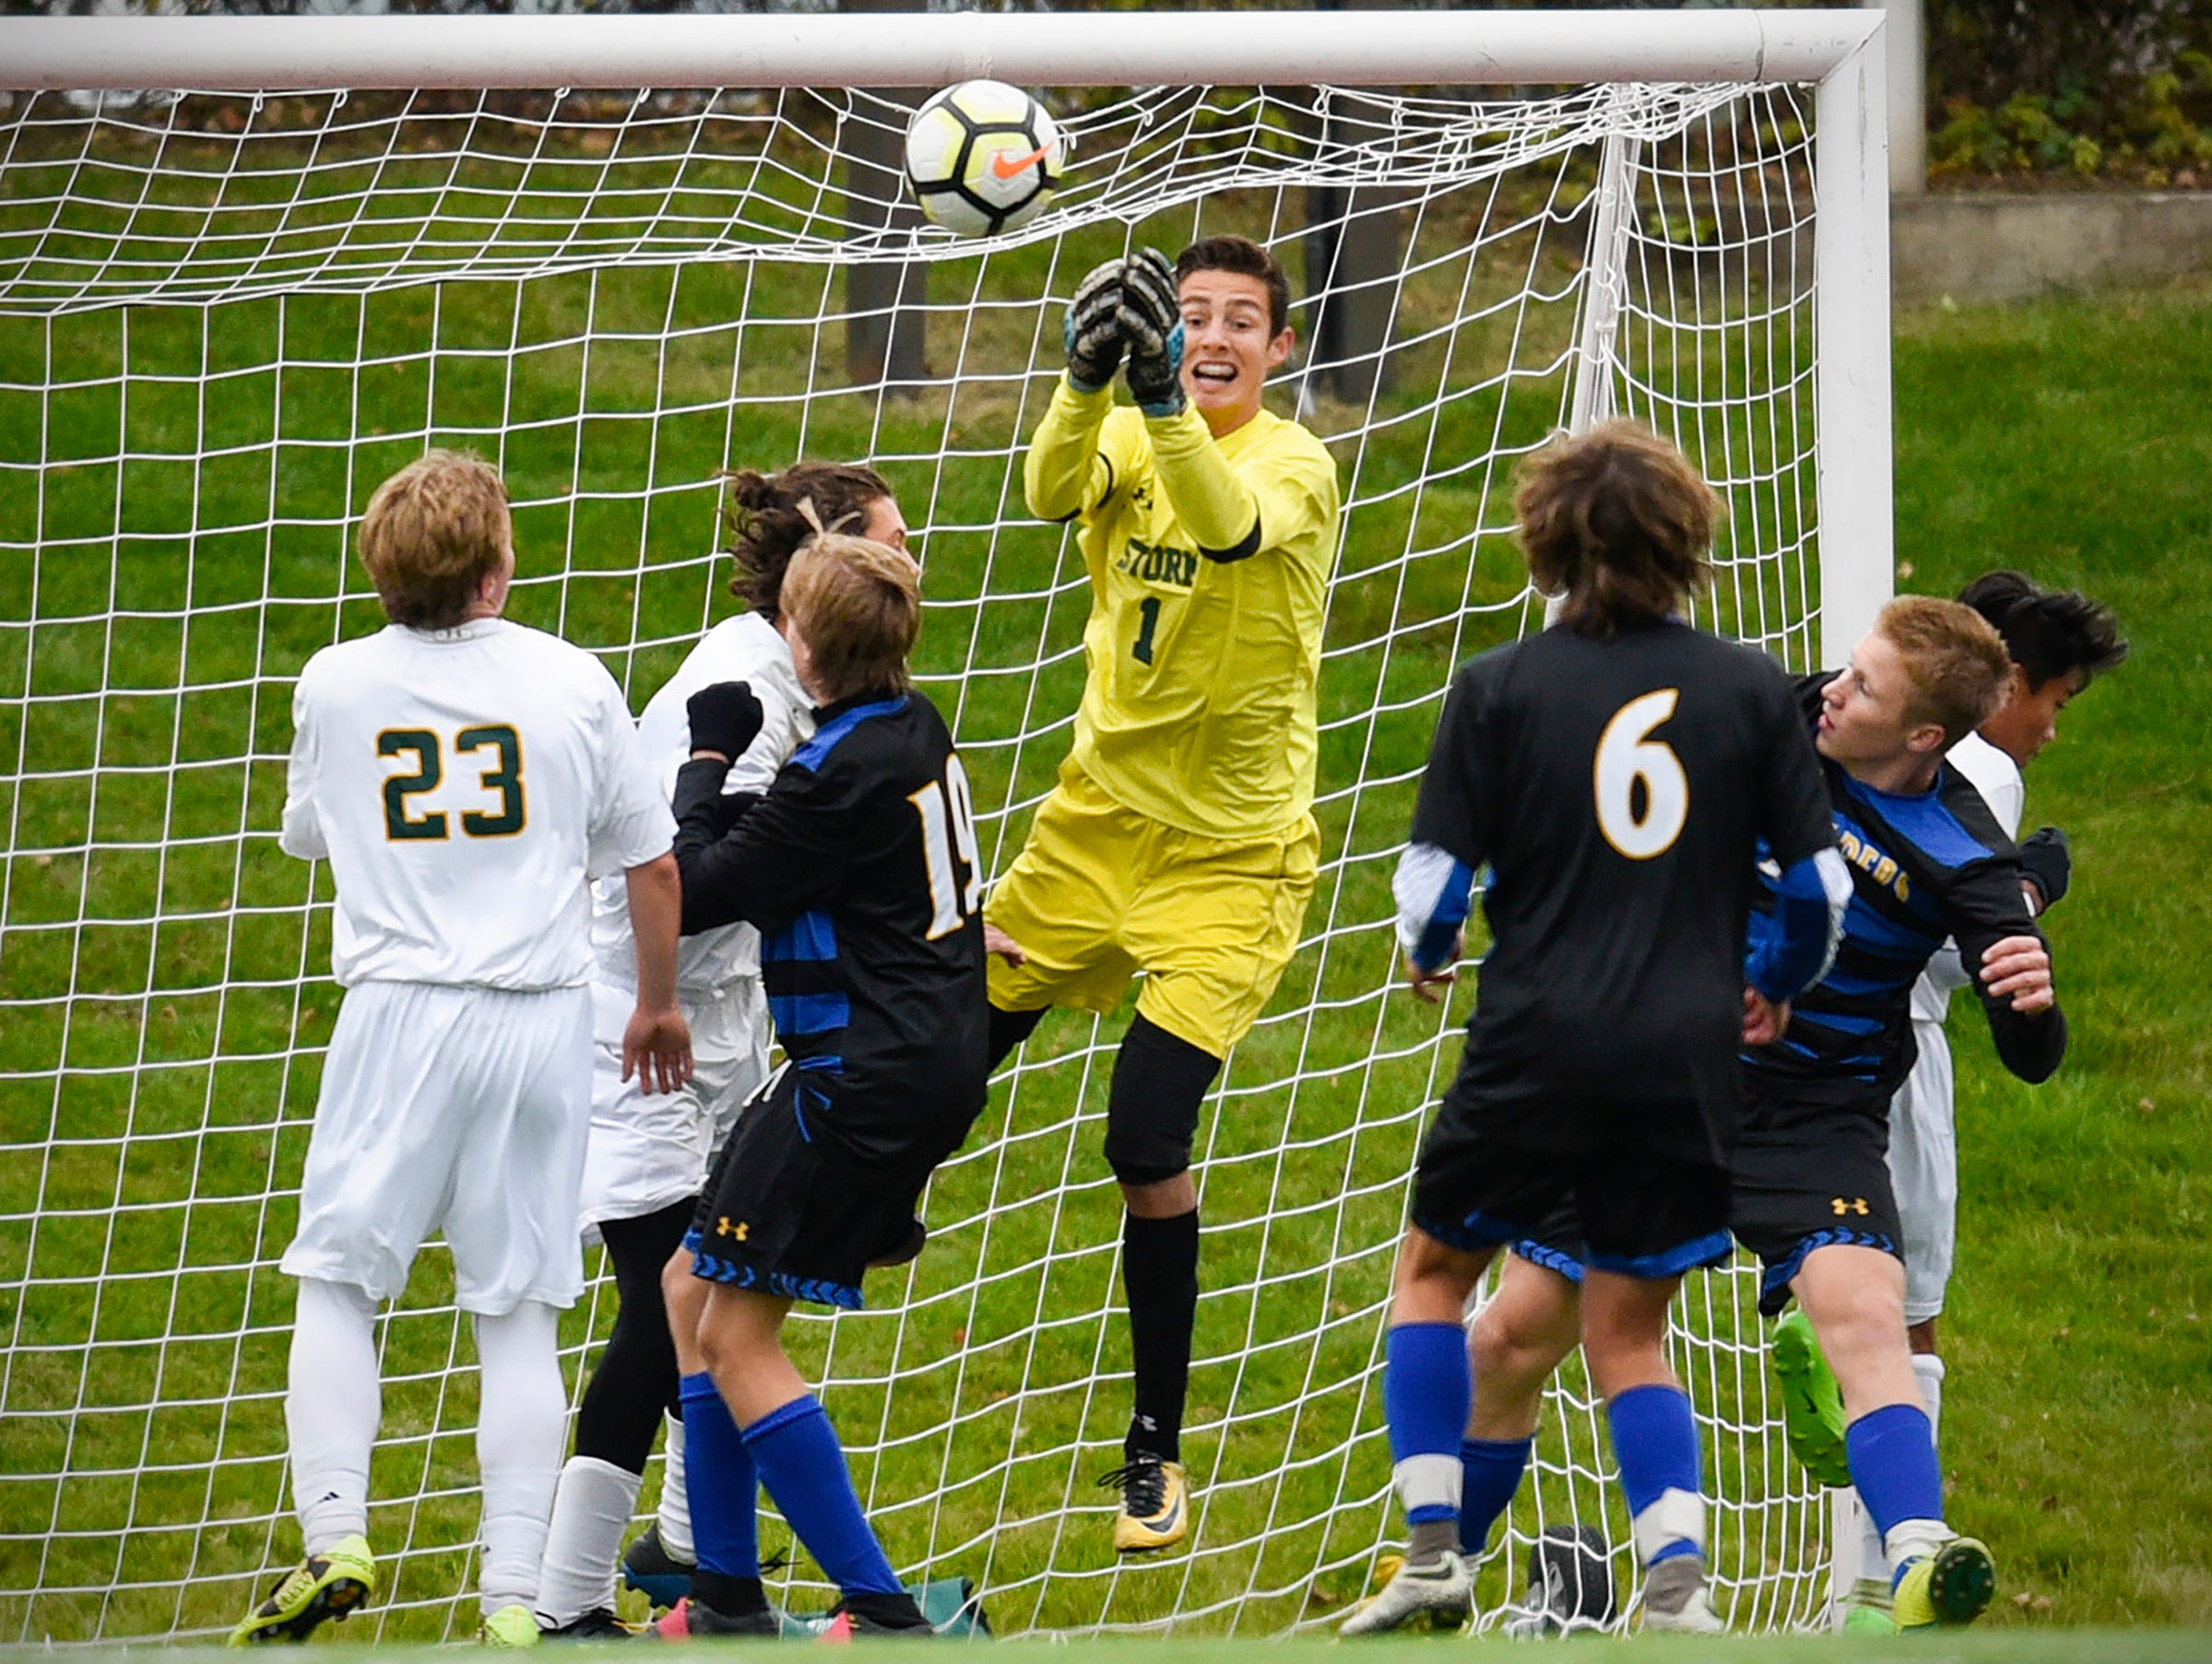 Sauk Rapids goalie Eli Rudnick makes a save against Cathedral during the first half Saturday, Sept. 29, at Husky Stadium.